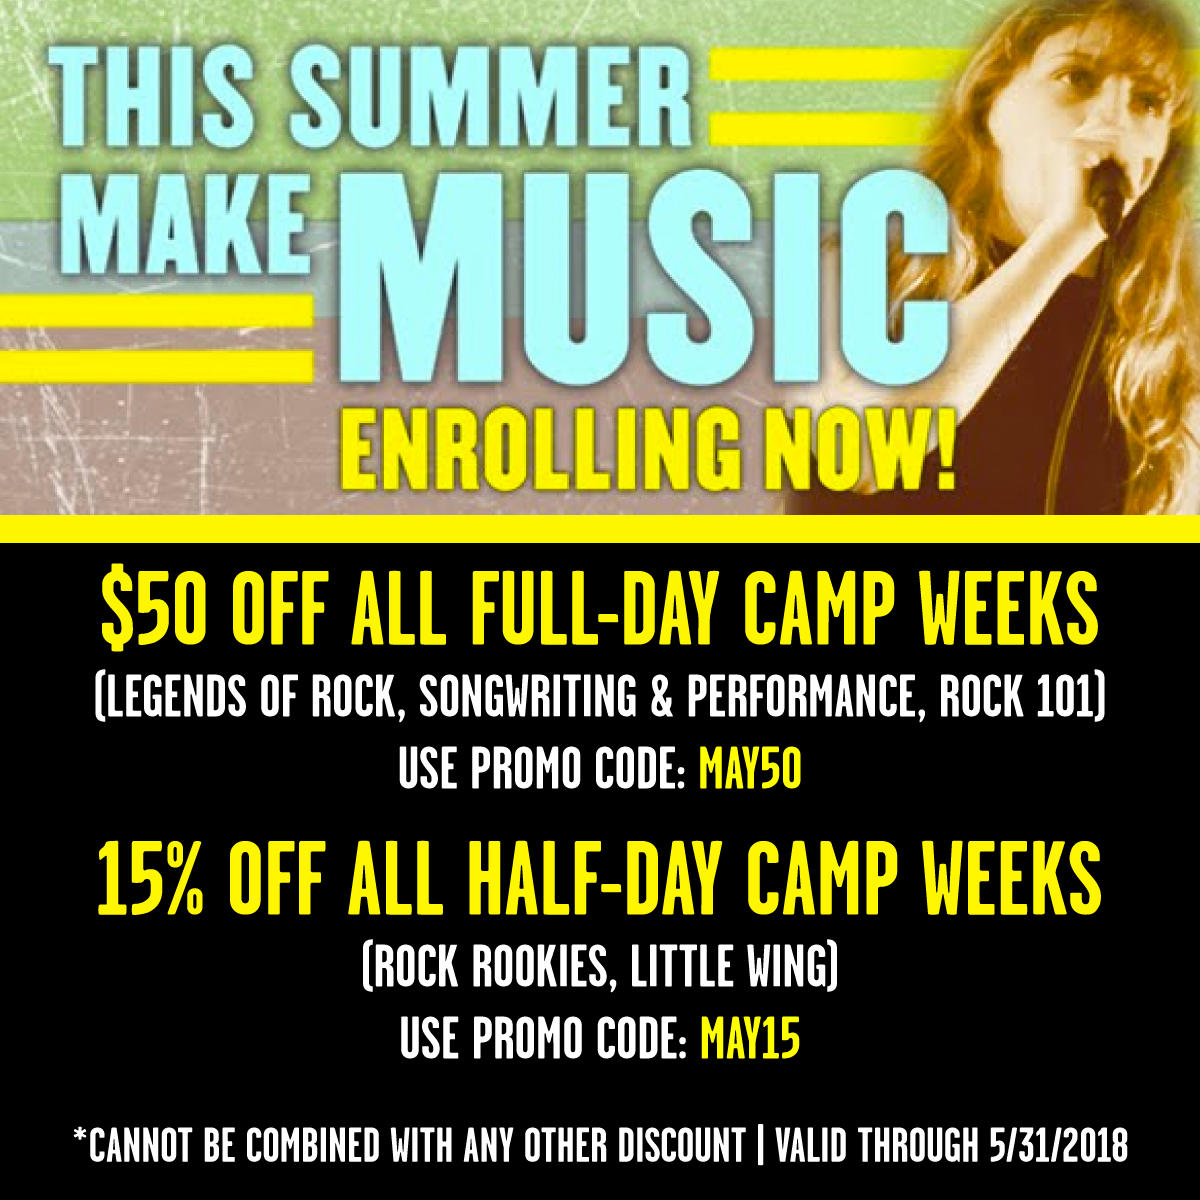 Image of THIS SUMMER MAKE MUSIC: HUGE DISCOUNTS ON SUMMER CAMPS THROUGH 3/31